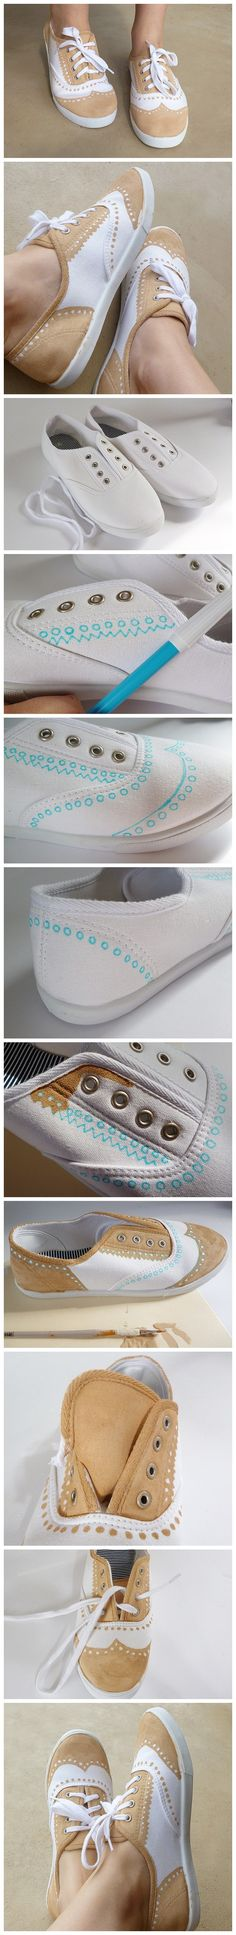 DIY Oxfords